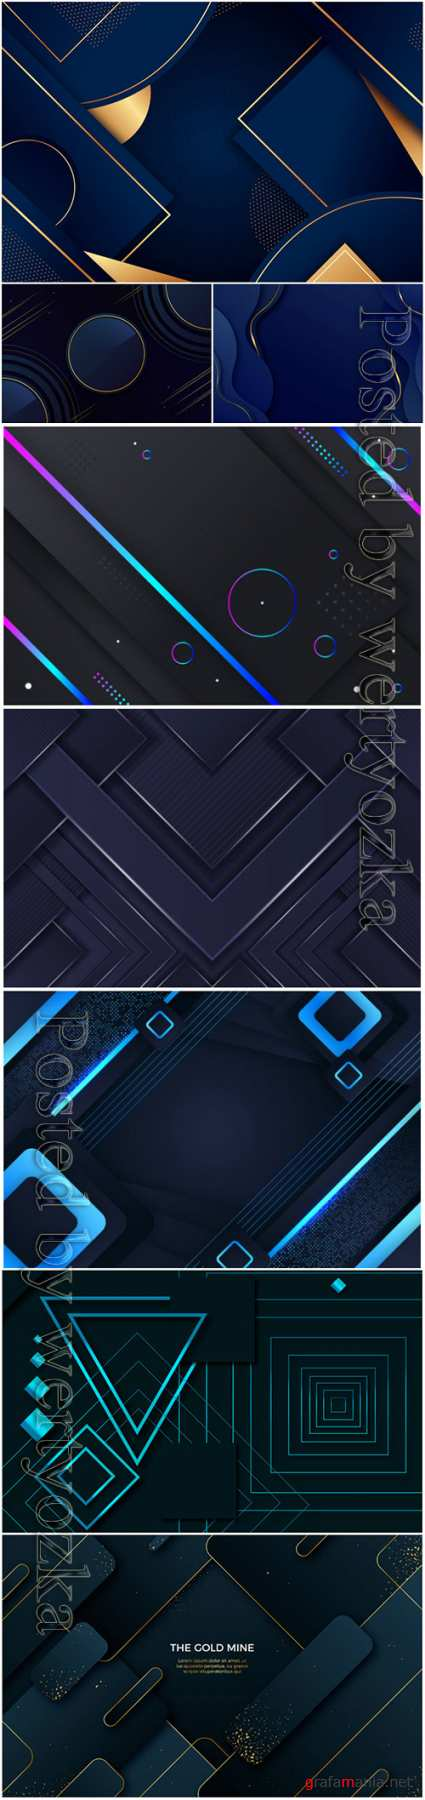 Luxury abstract backgrounds in vector # 4